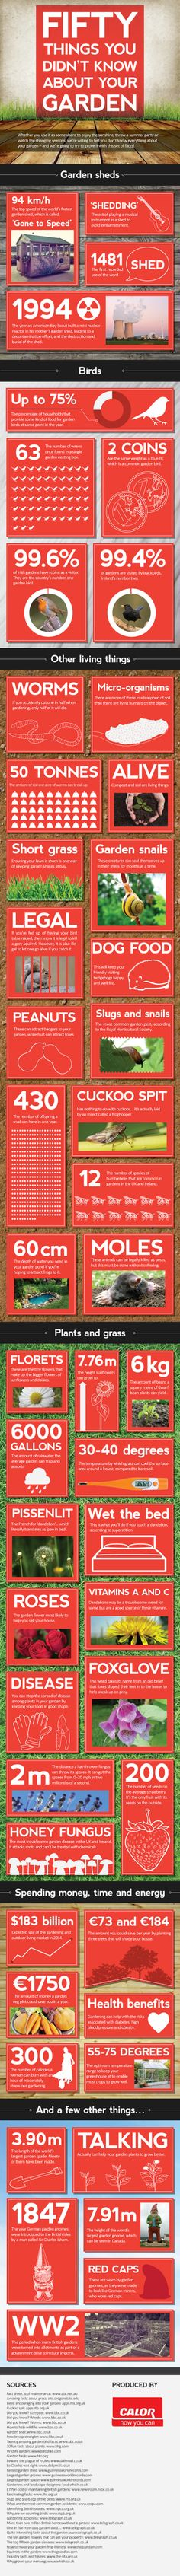 50 Things You Didn't Know About Your Garden – Infographic